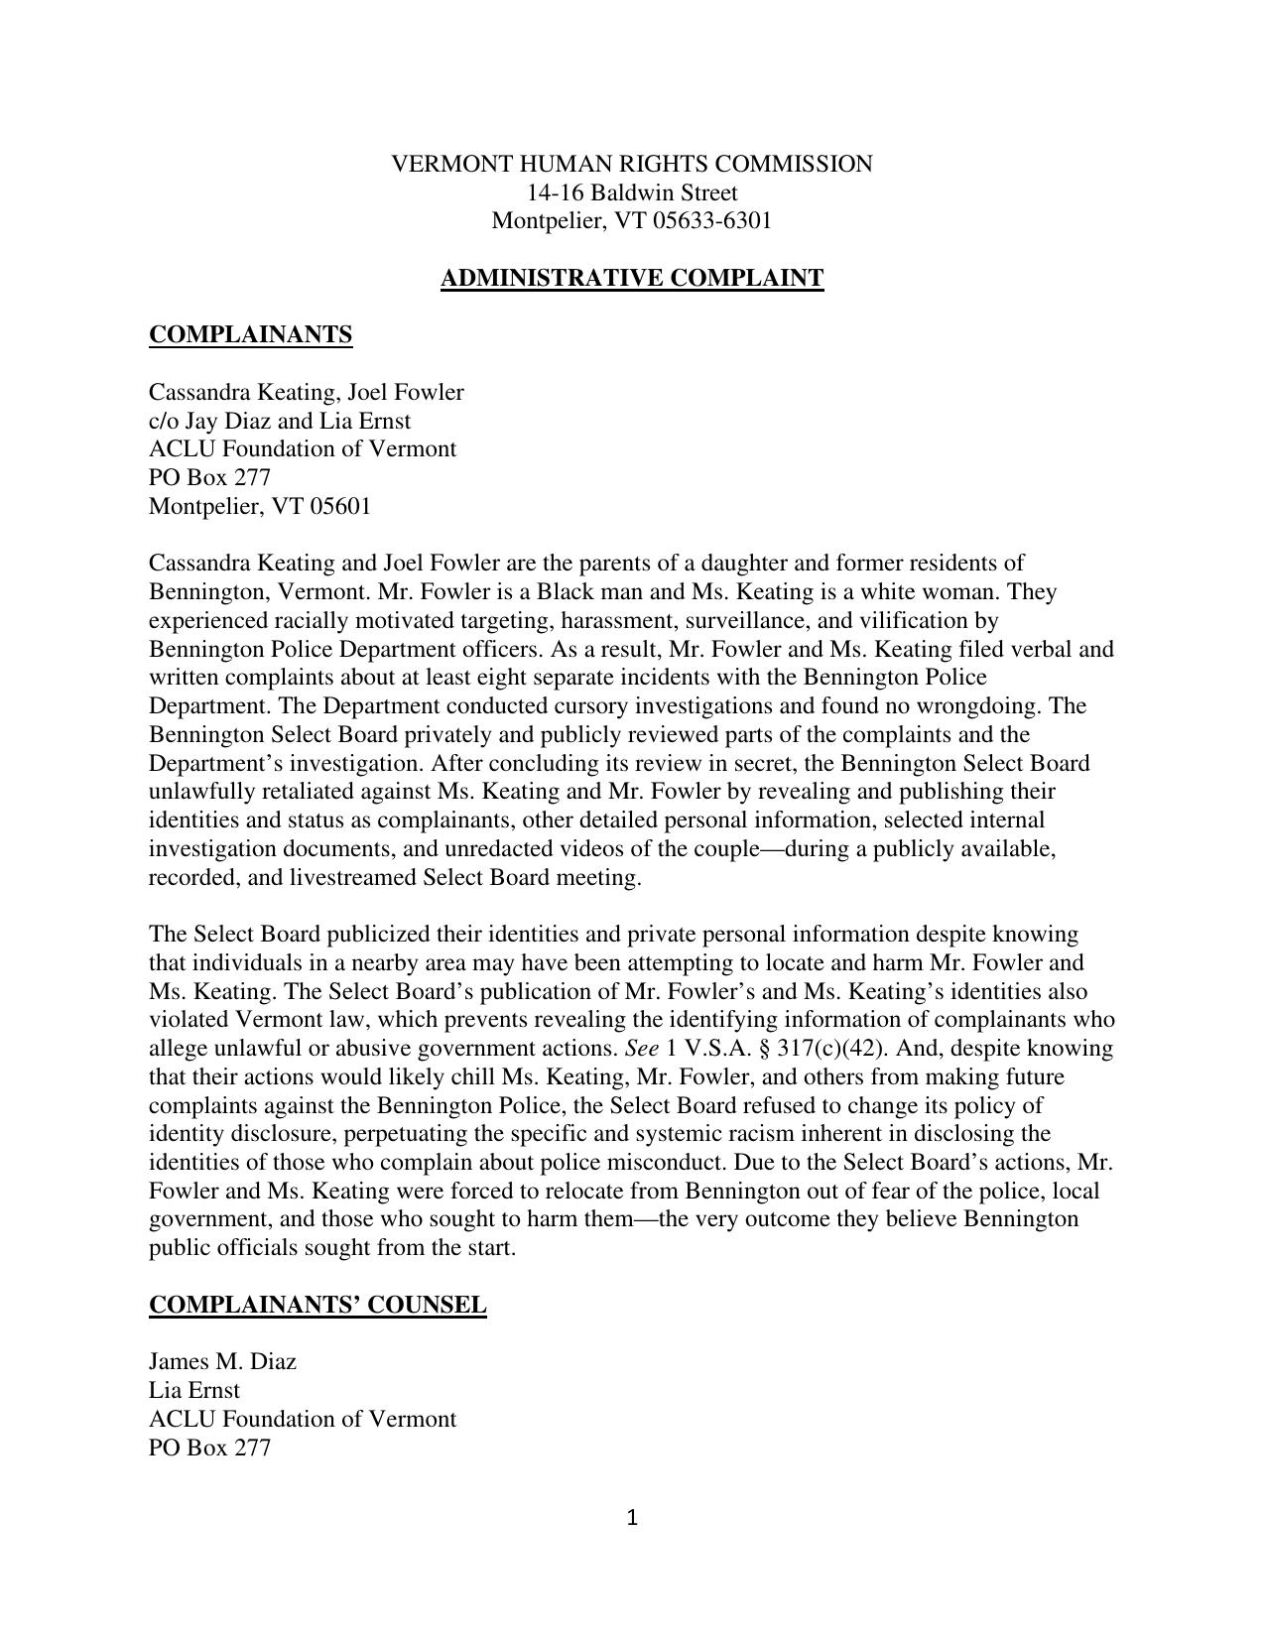 Fowler-Keating complaint to the VHRC